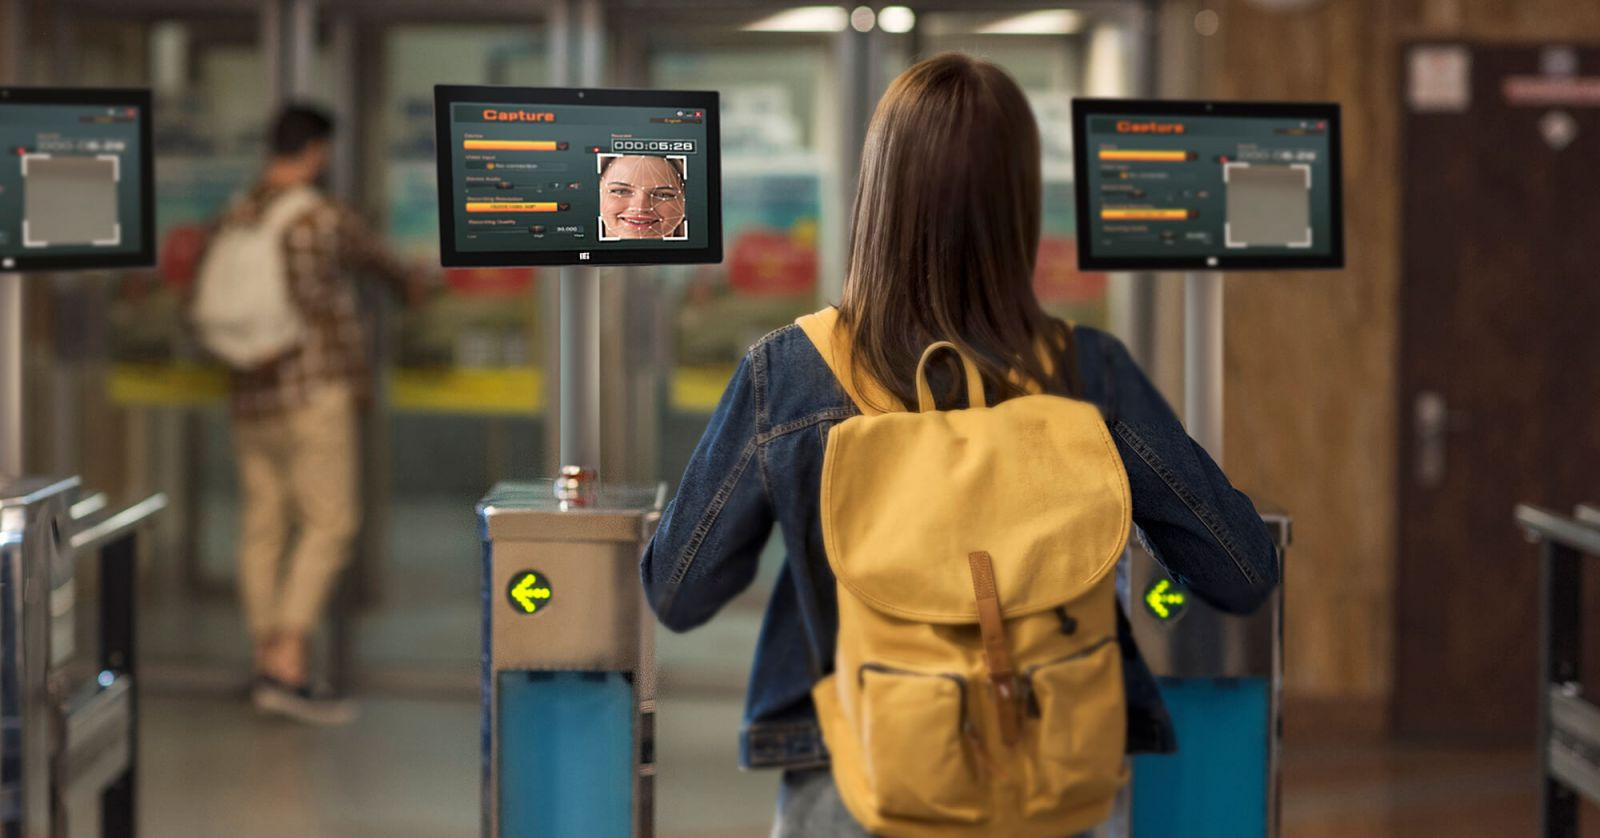 Access Gate Control Computer | IoT case study - facial recognition